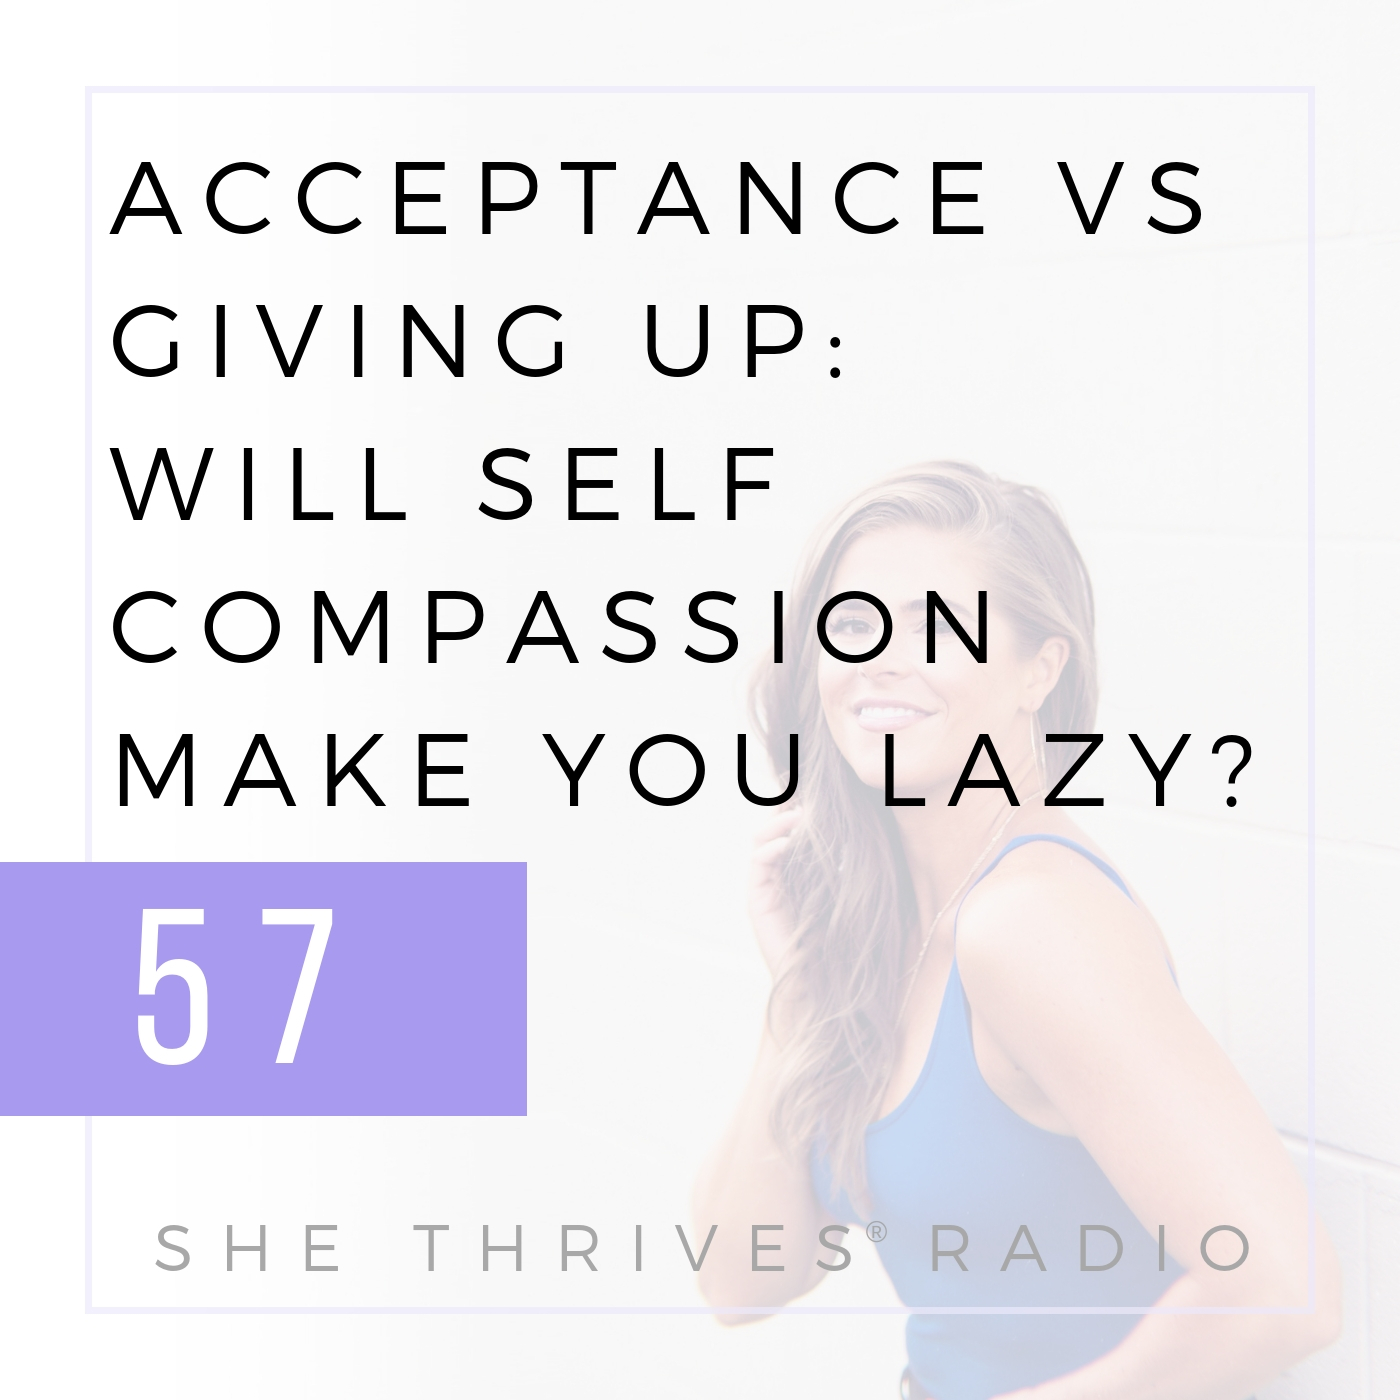 57 | Acceptance vs Giving Up: Will Self-Compassion Make You Lazy? | SHE THRIVES RADIO